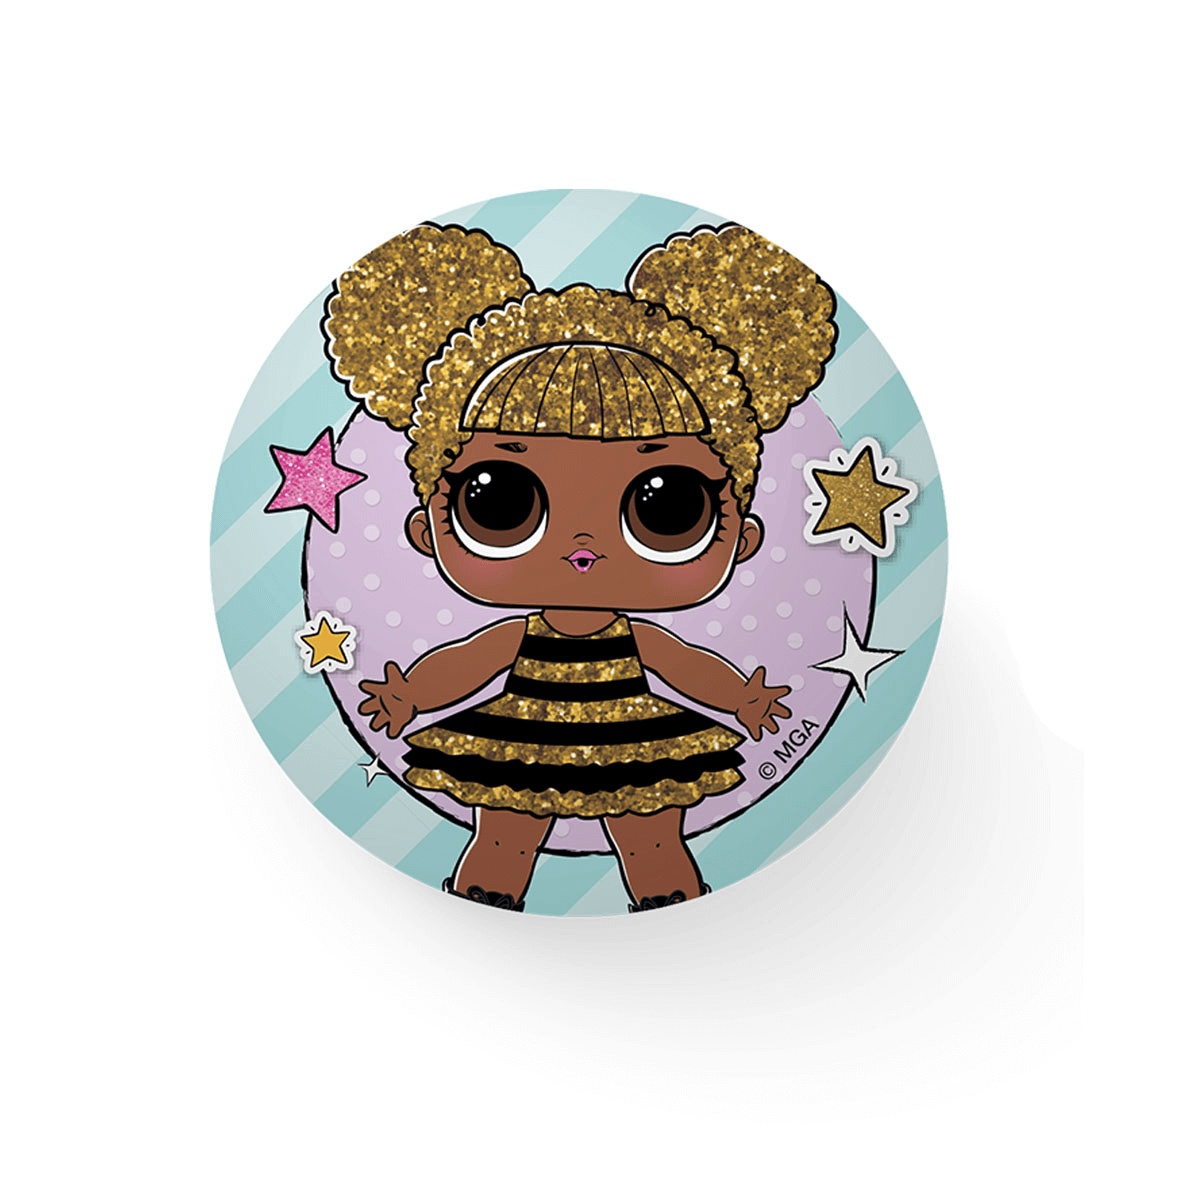 L O L Surprise Squeeze Ball 10cm Queen Bee L O L Surprise Dolls Search By Brand The Toyshop Site Lol Dolls Queen Bees Lol